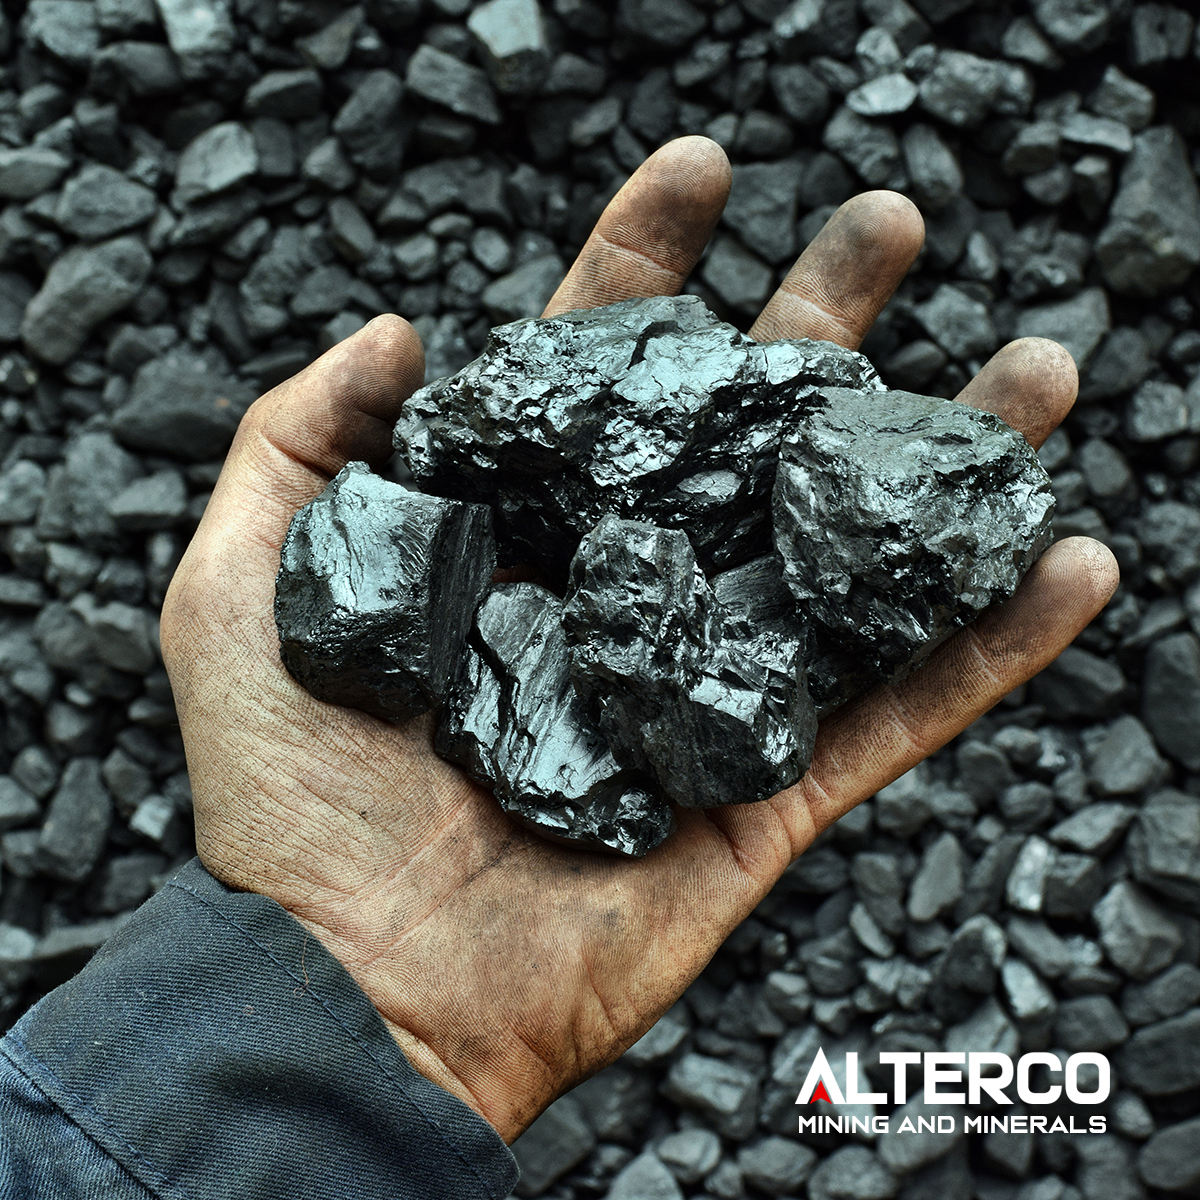 Anthracite Coal from Indonesia (Direct Supplier) - Premium Quality & Affordable